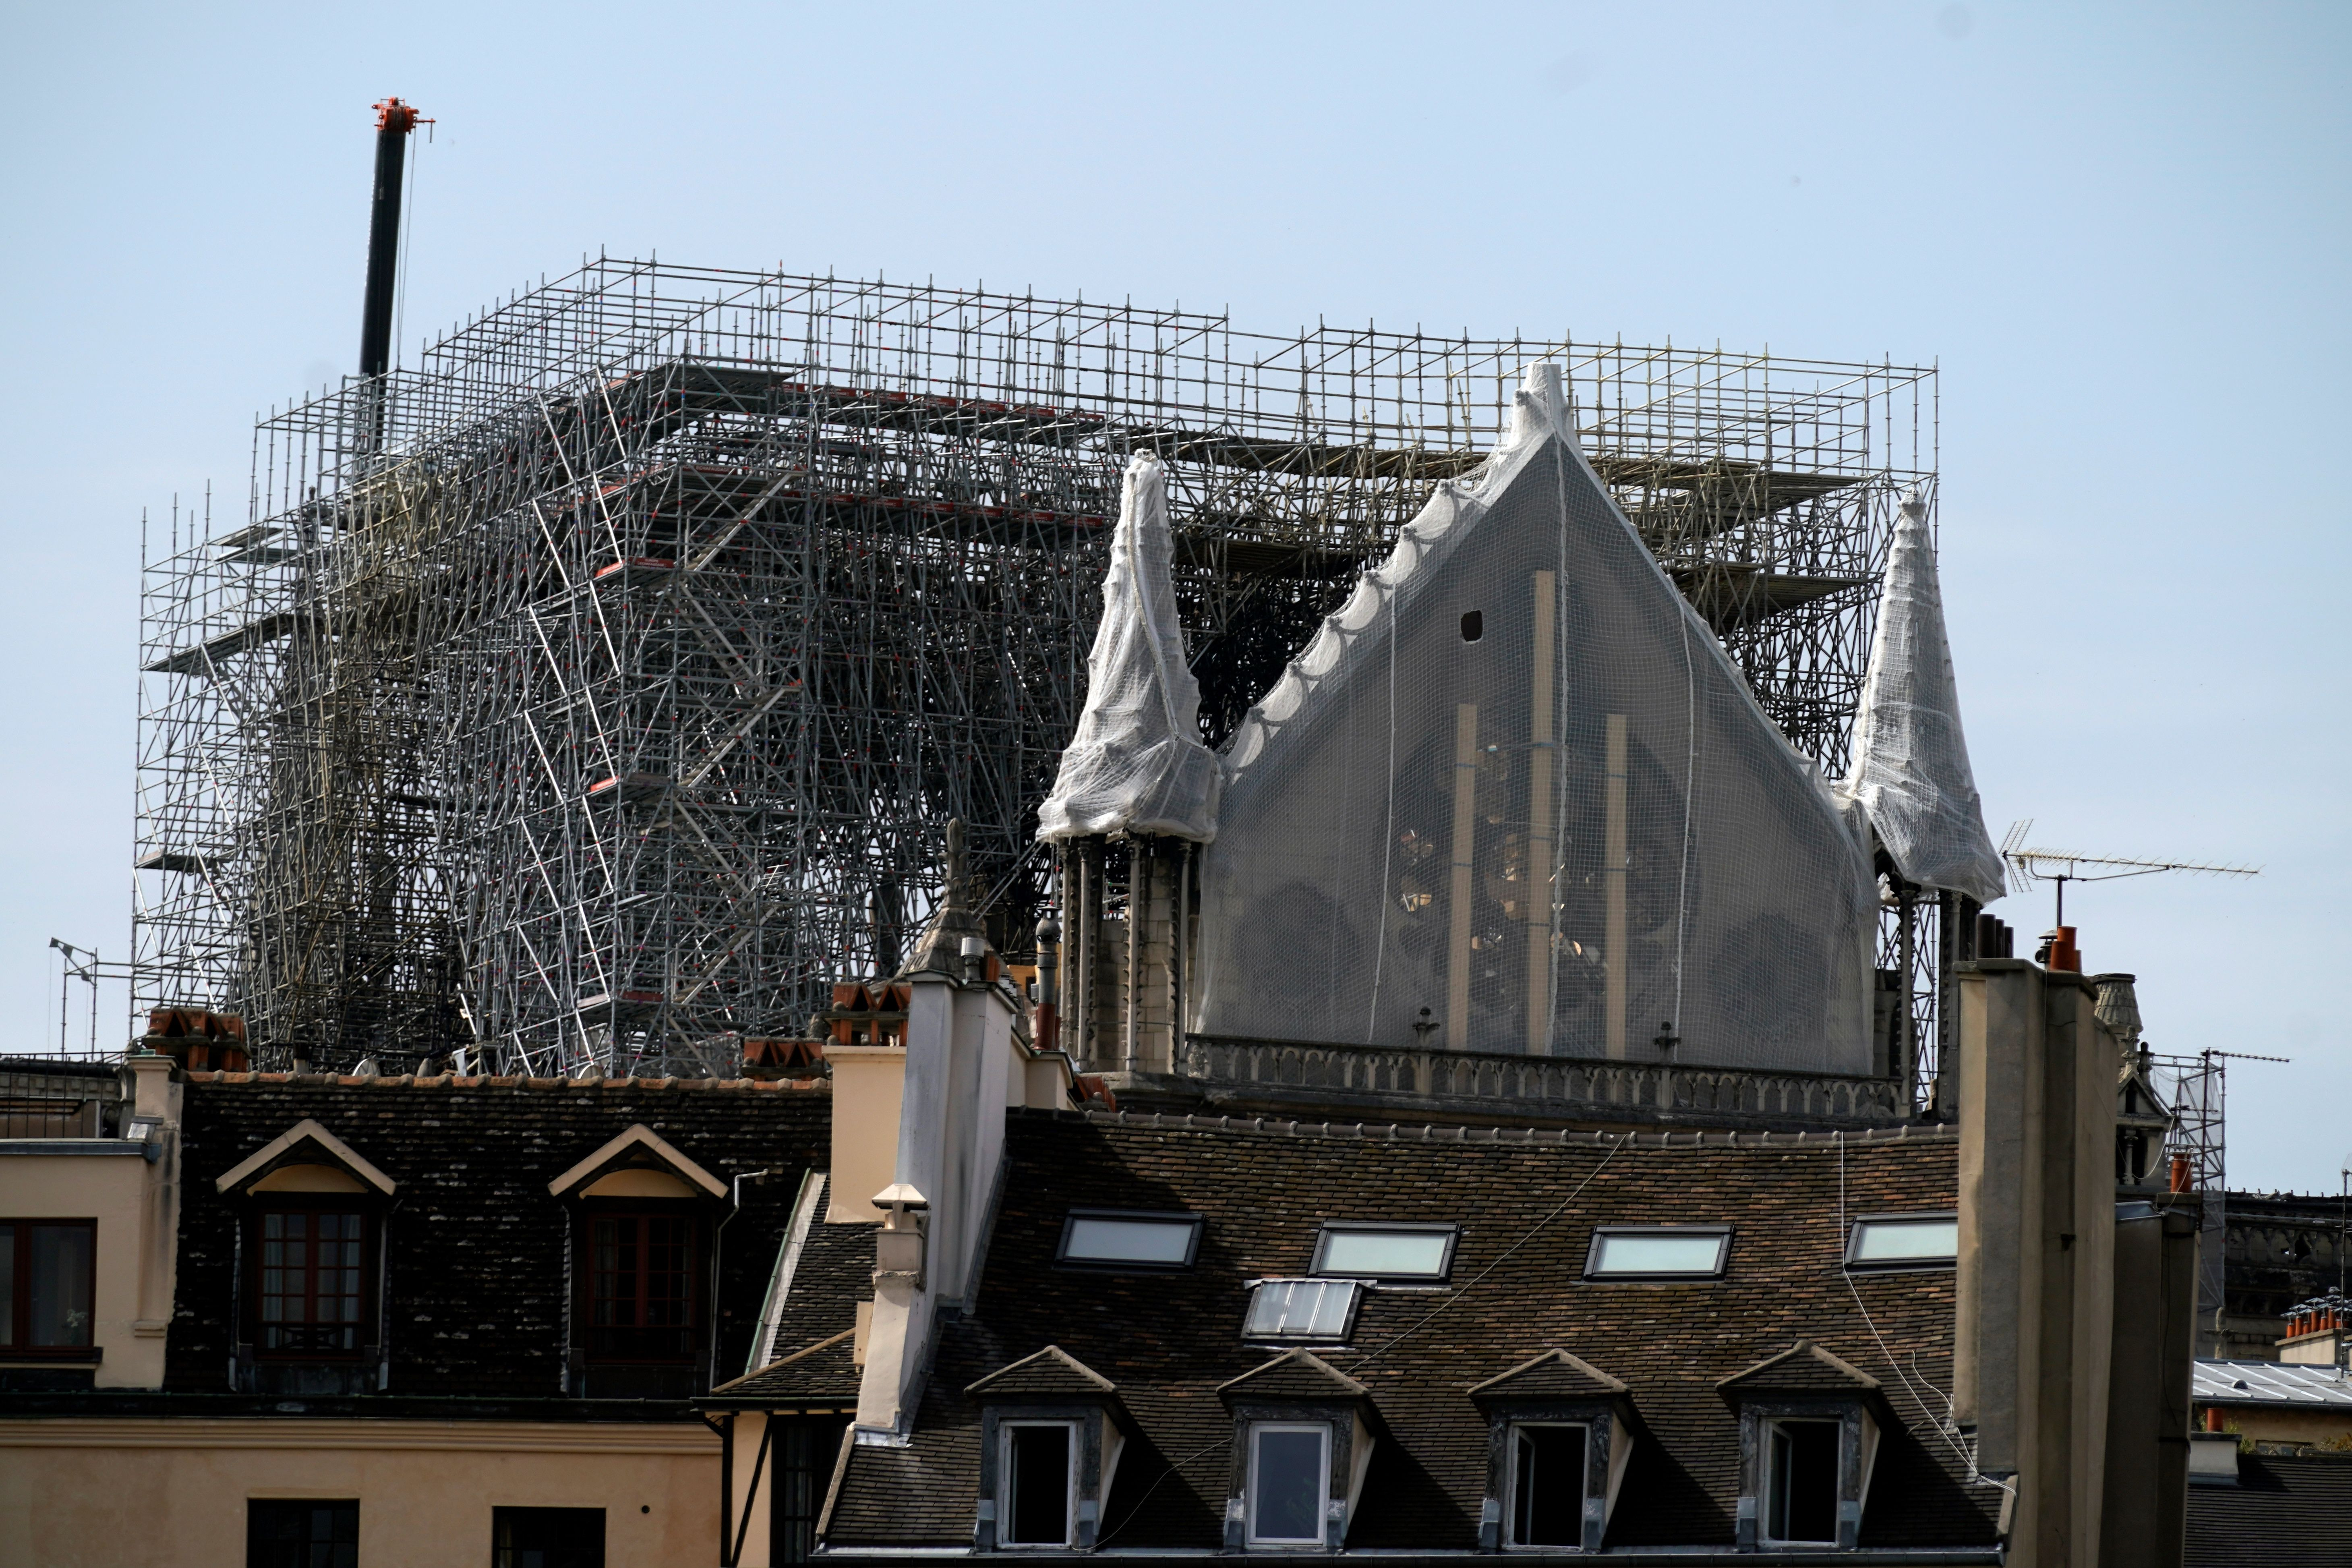 The Rosette of Notre-Dame de Paris Cathedral in Paris on April 22, 2019, is covered with protective material, seven days after a fire devastated the cathedral. LIONEL BONAVENTURE/AFP/Getty Images